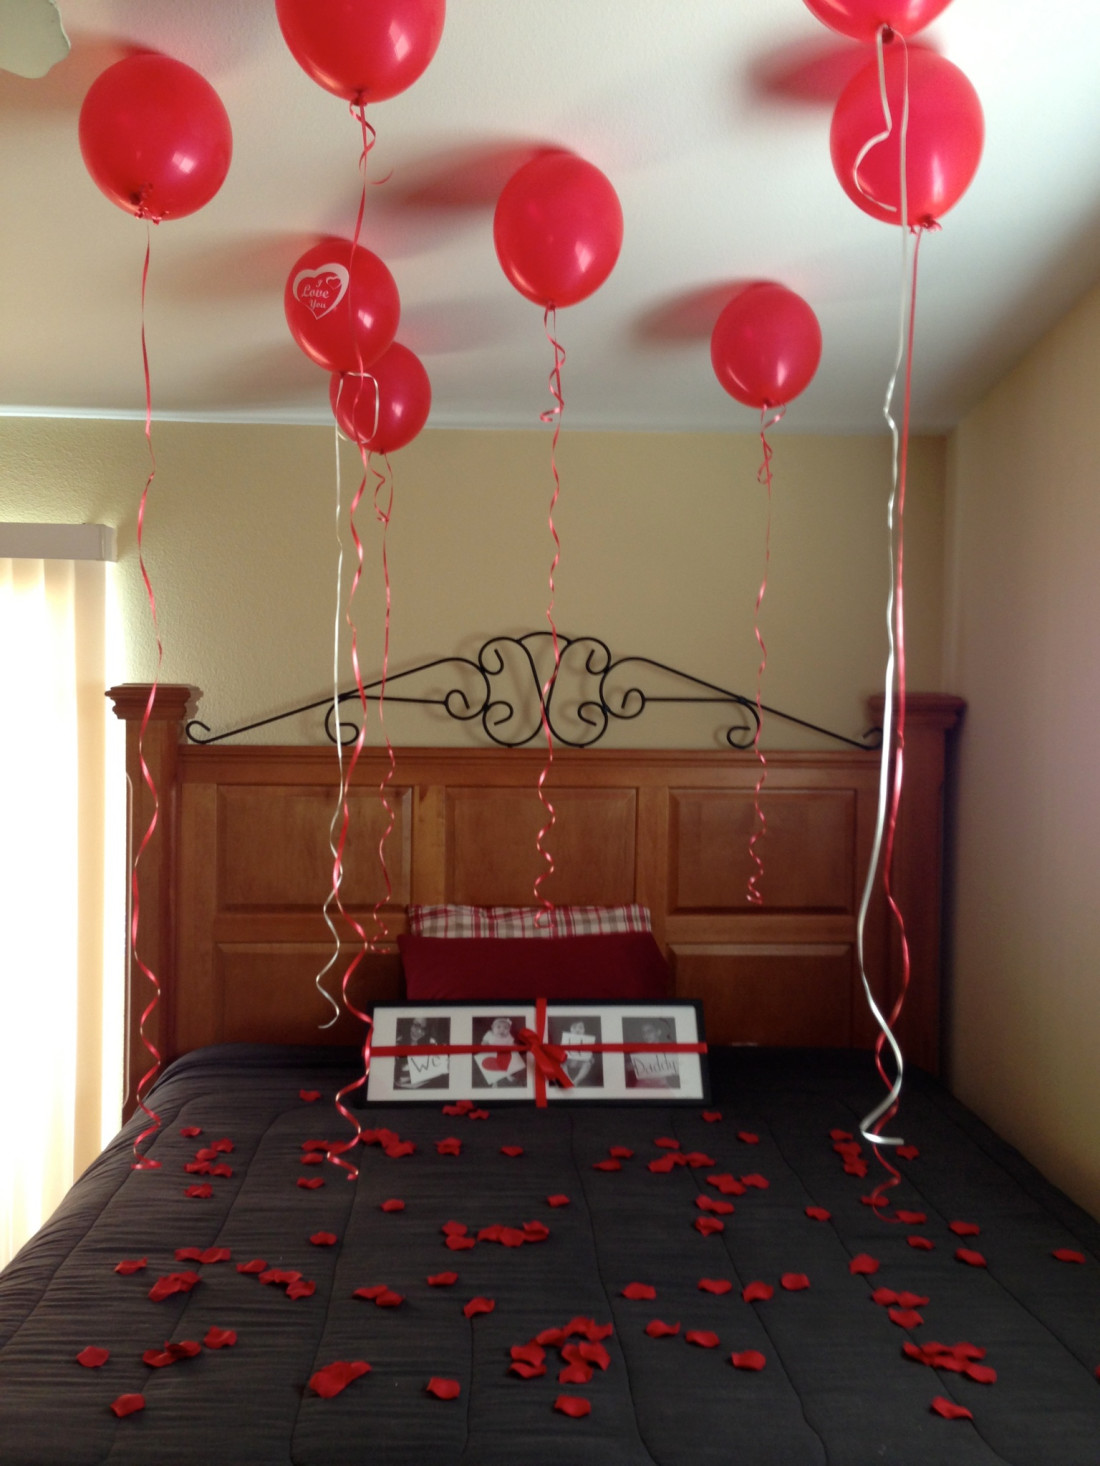 Decorate your bedroom to surprise your husband for Valentine's Day!